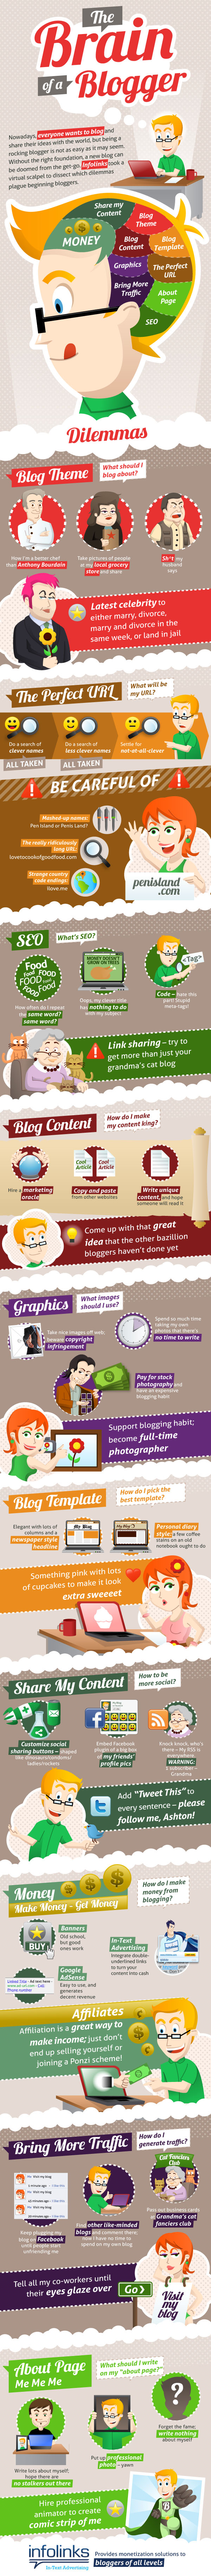 the Blogger Brain